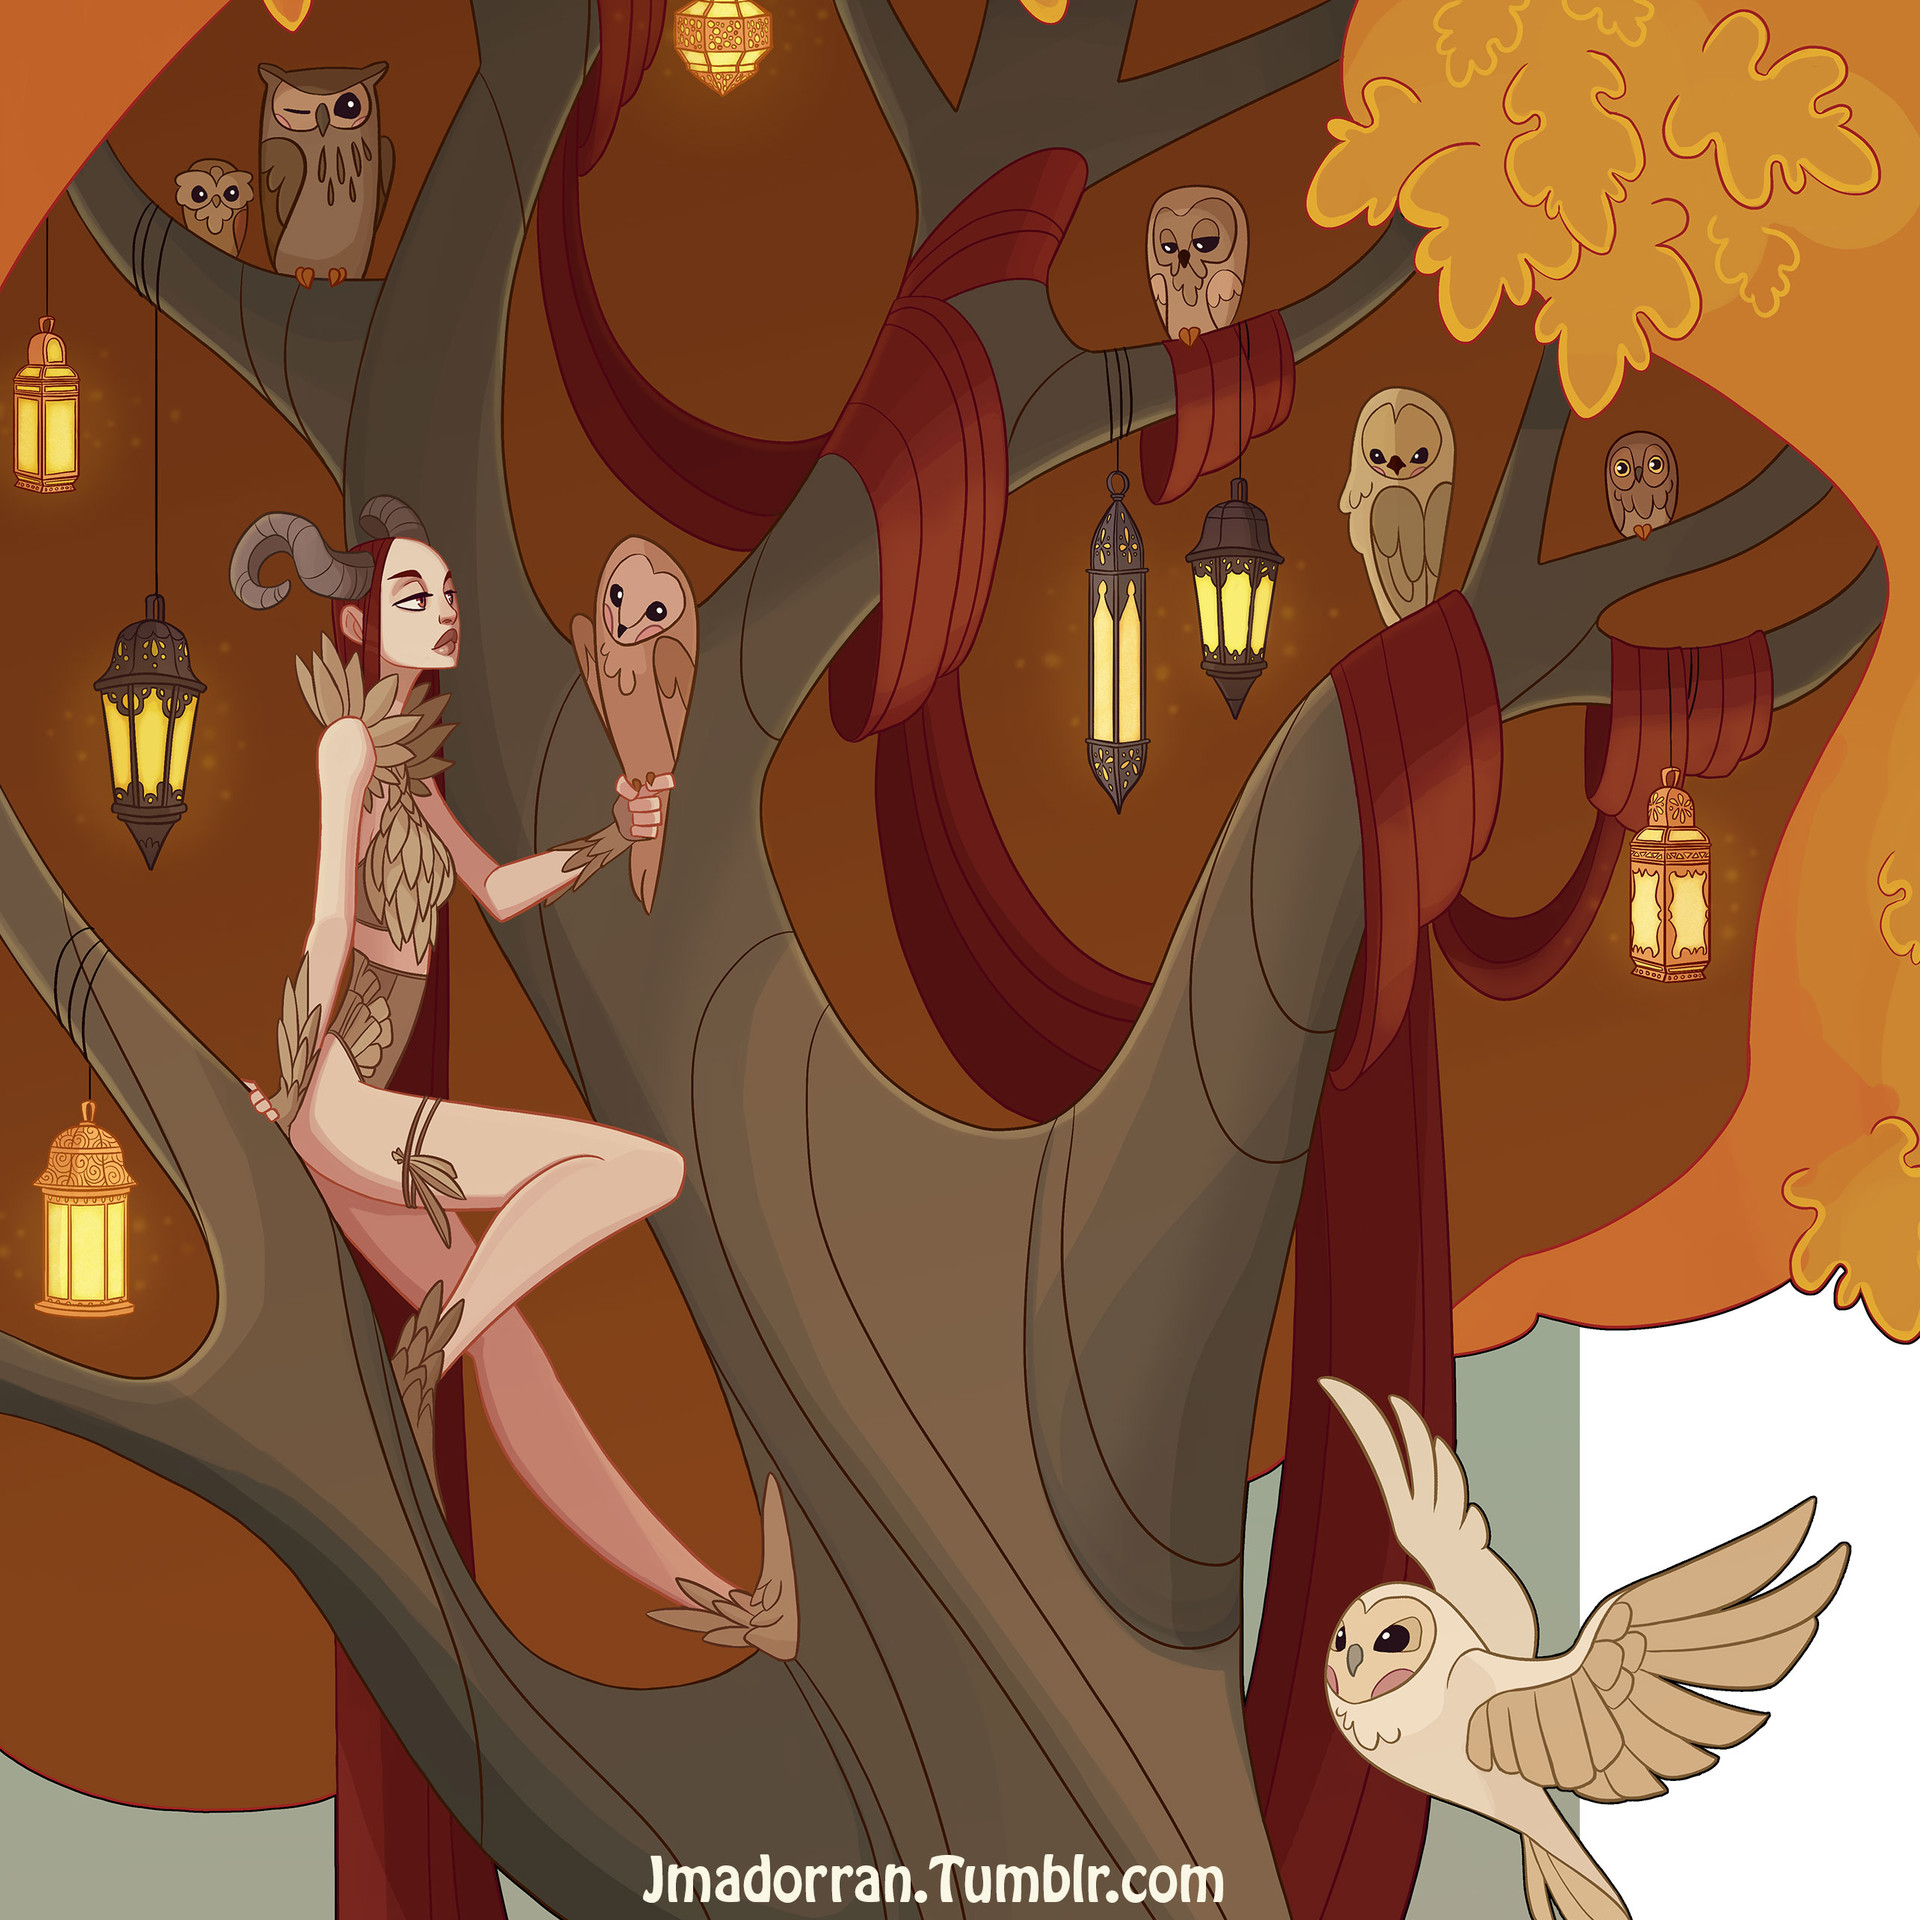 Jessica madorran character design fall tree 2016 blog closup 01